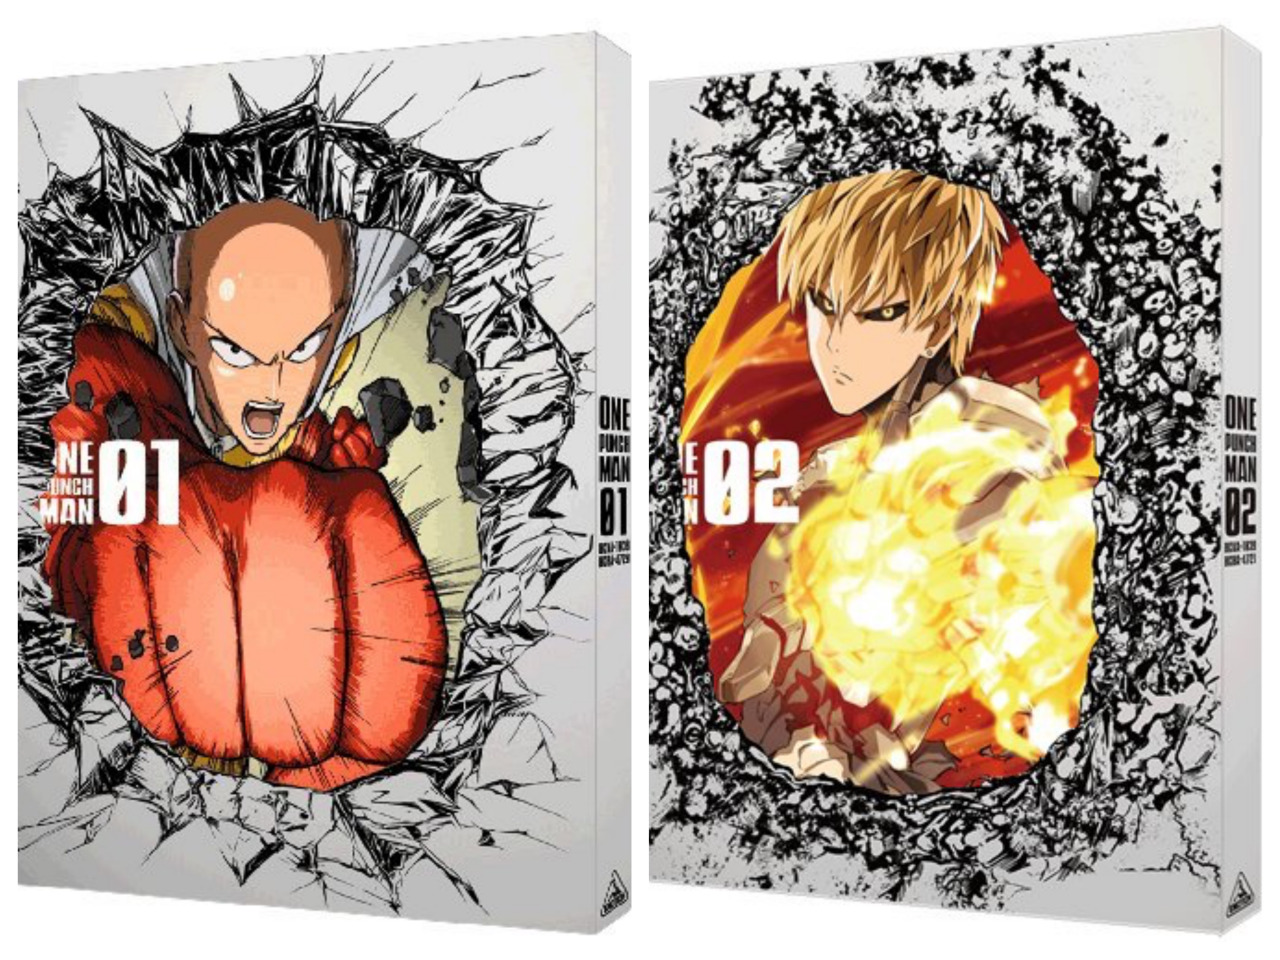 One-Punch Man Season 1 & The 7 OVAS | One-Punch Man | Know Your Meme